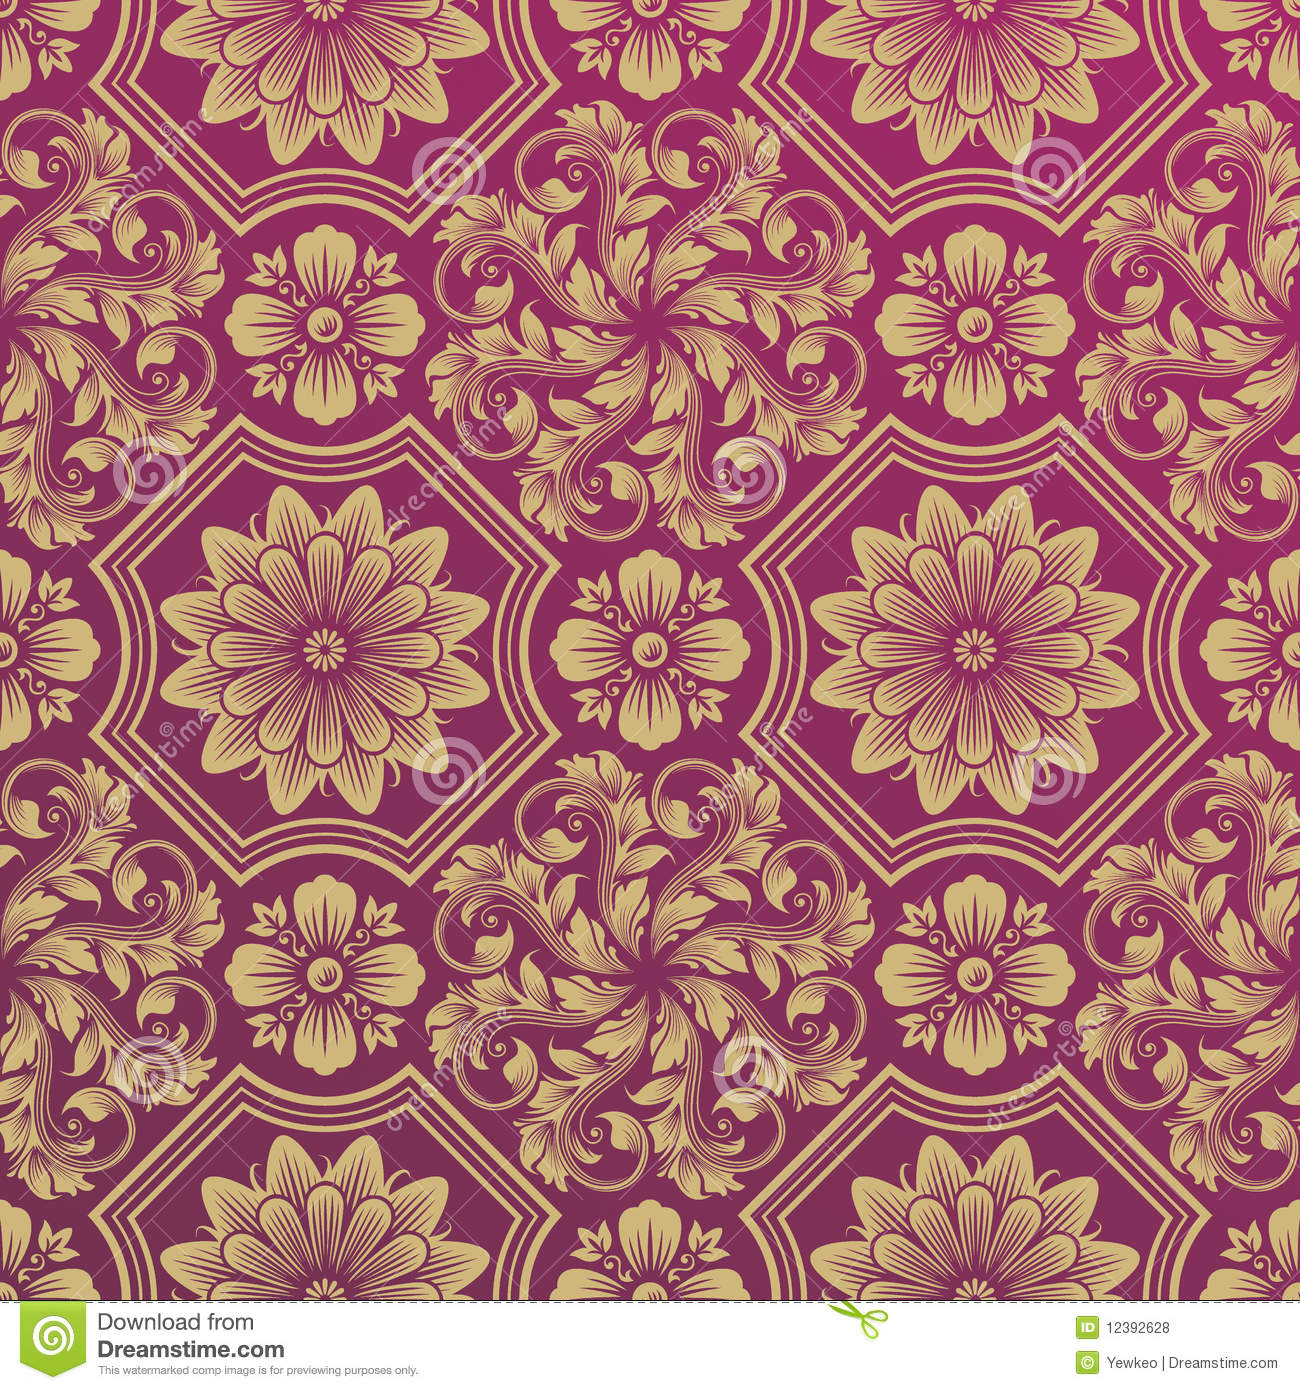 Damask Wallpaper Royalty Free Stock Photos Image 12392628